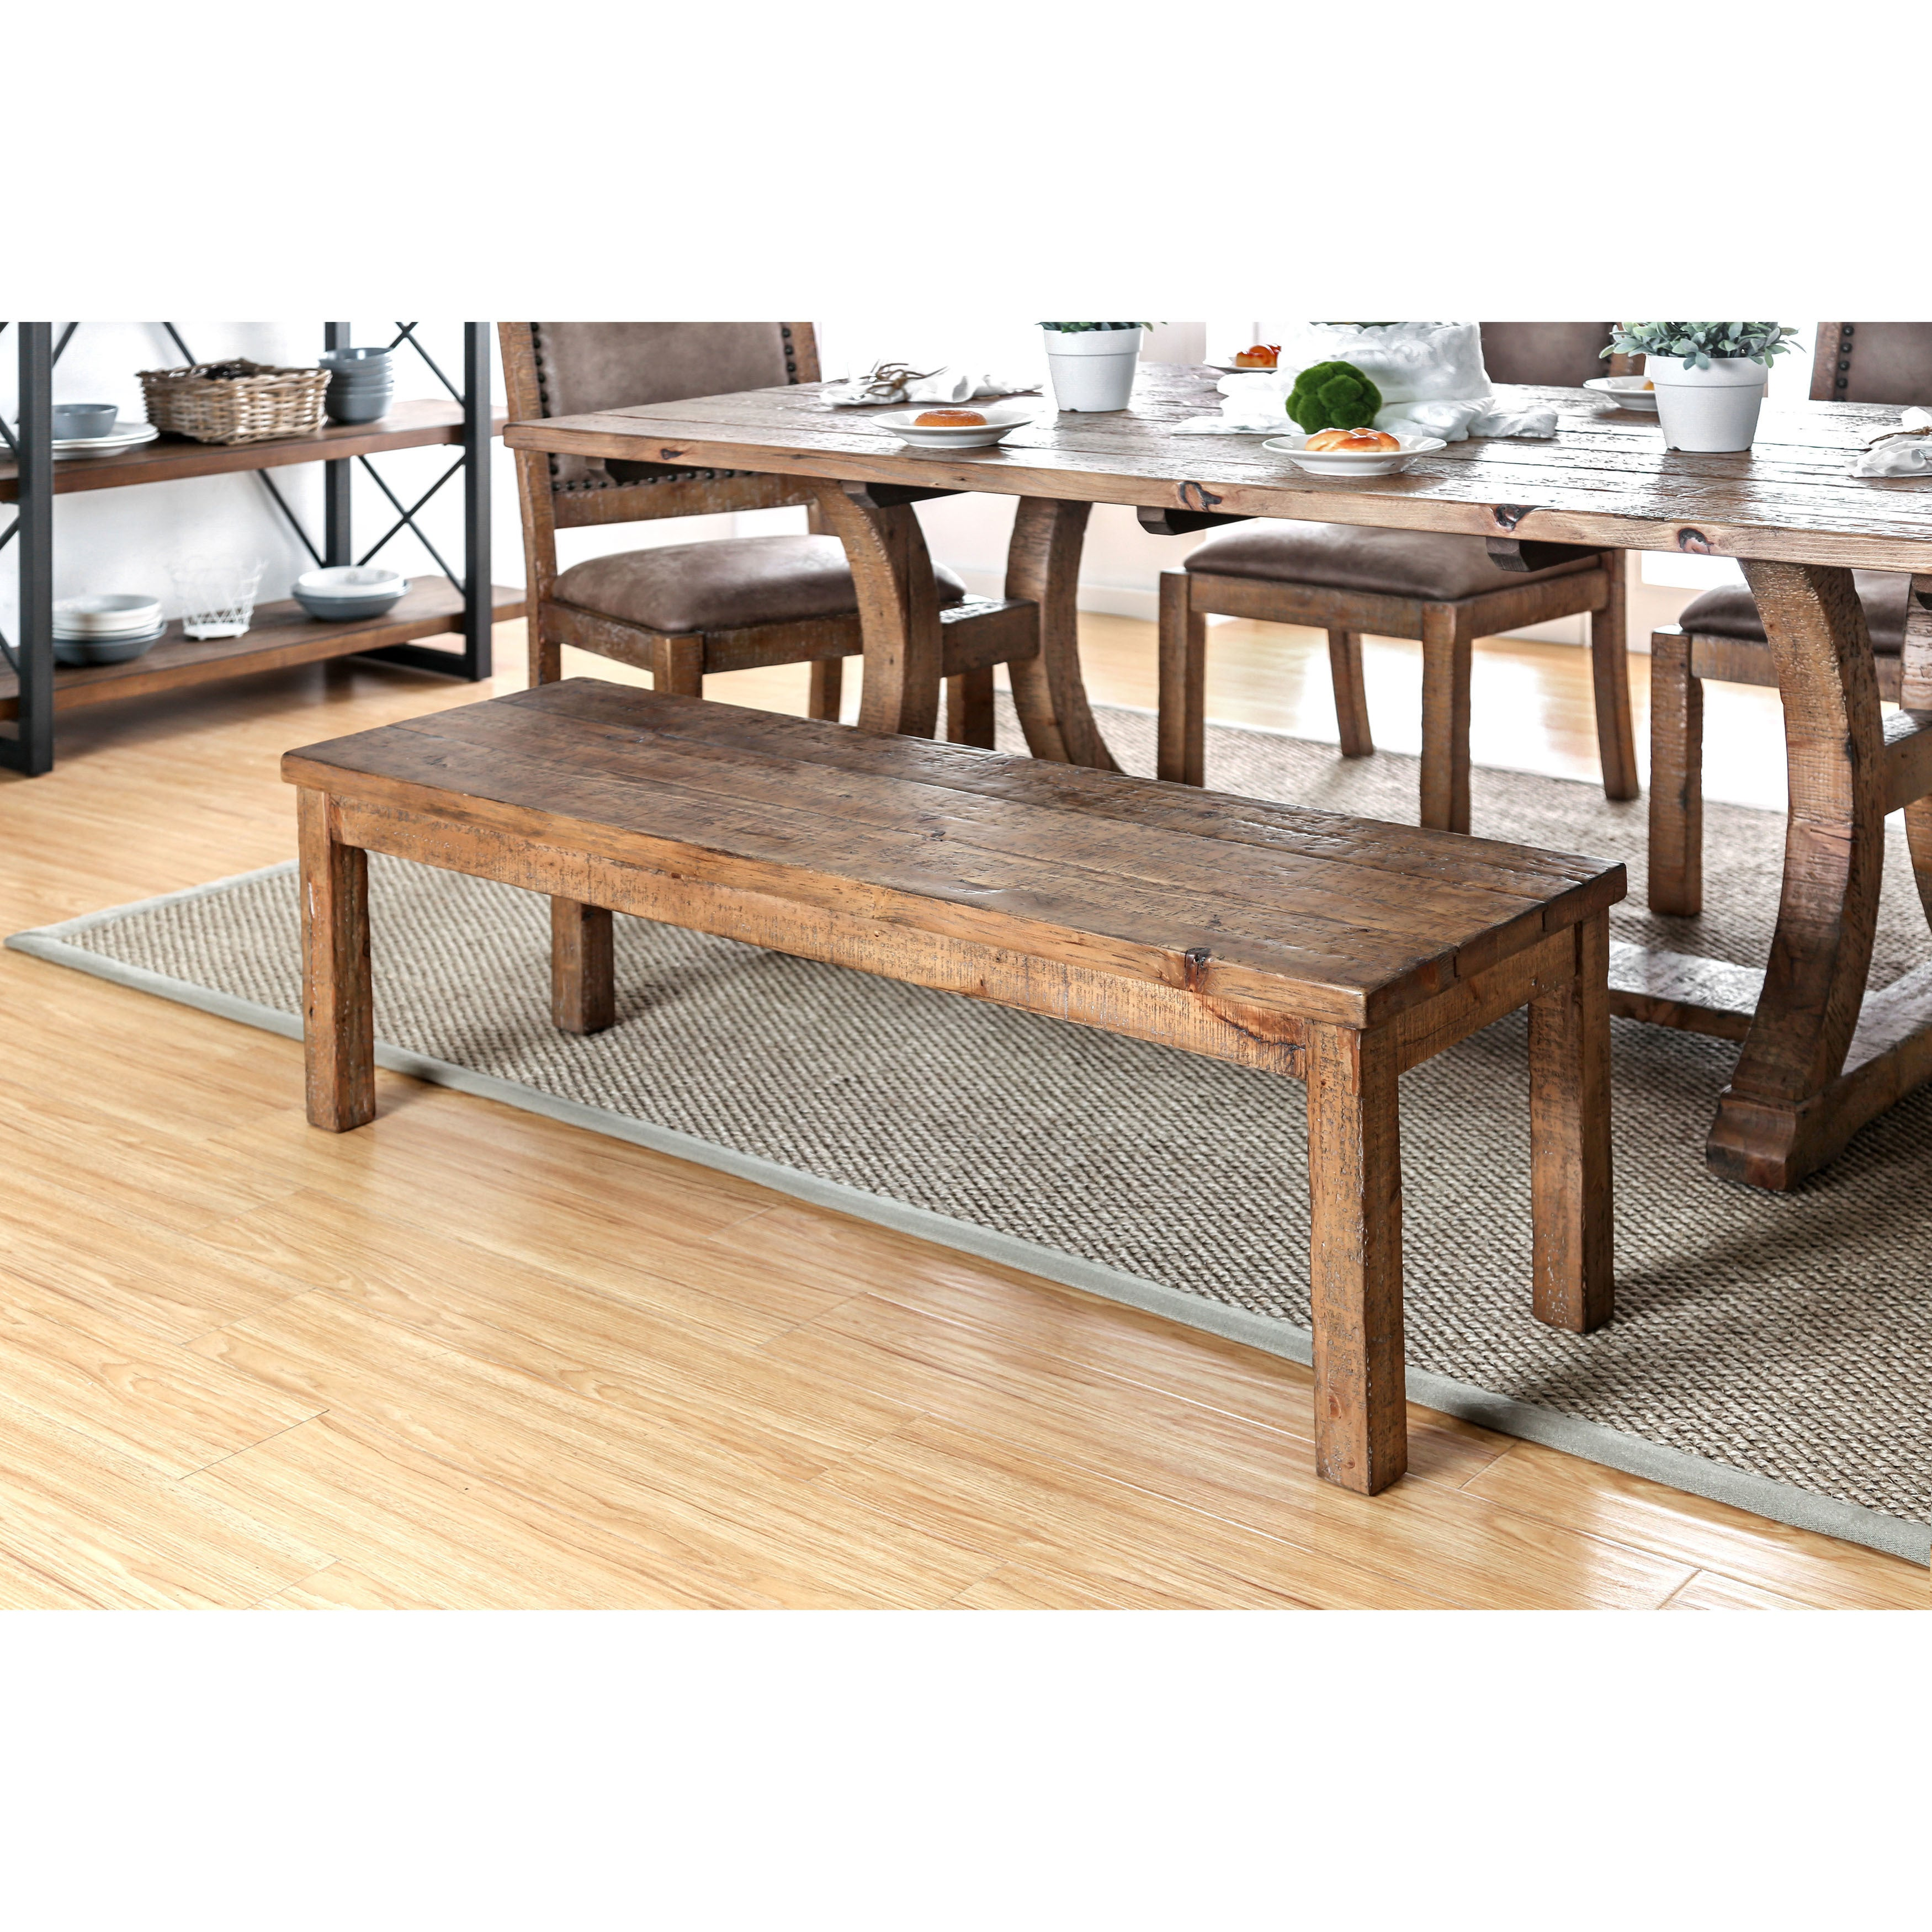 Shop furniture of america matthias industrial rustic pine dining bench free shipping today overstock com 16383591